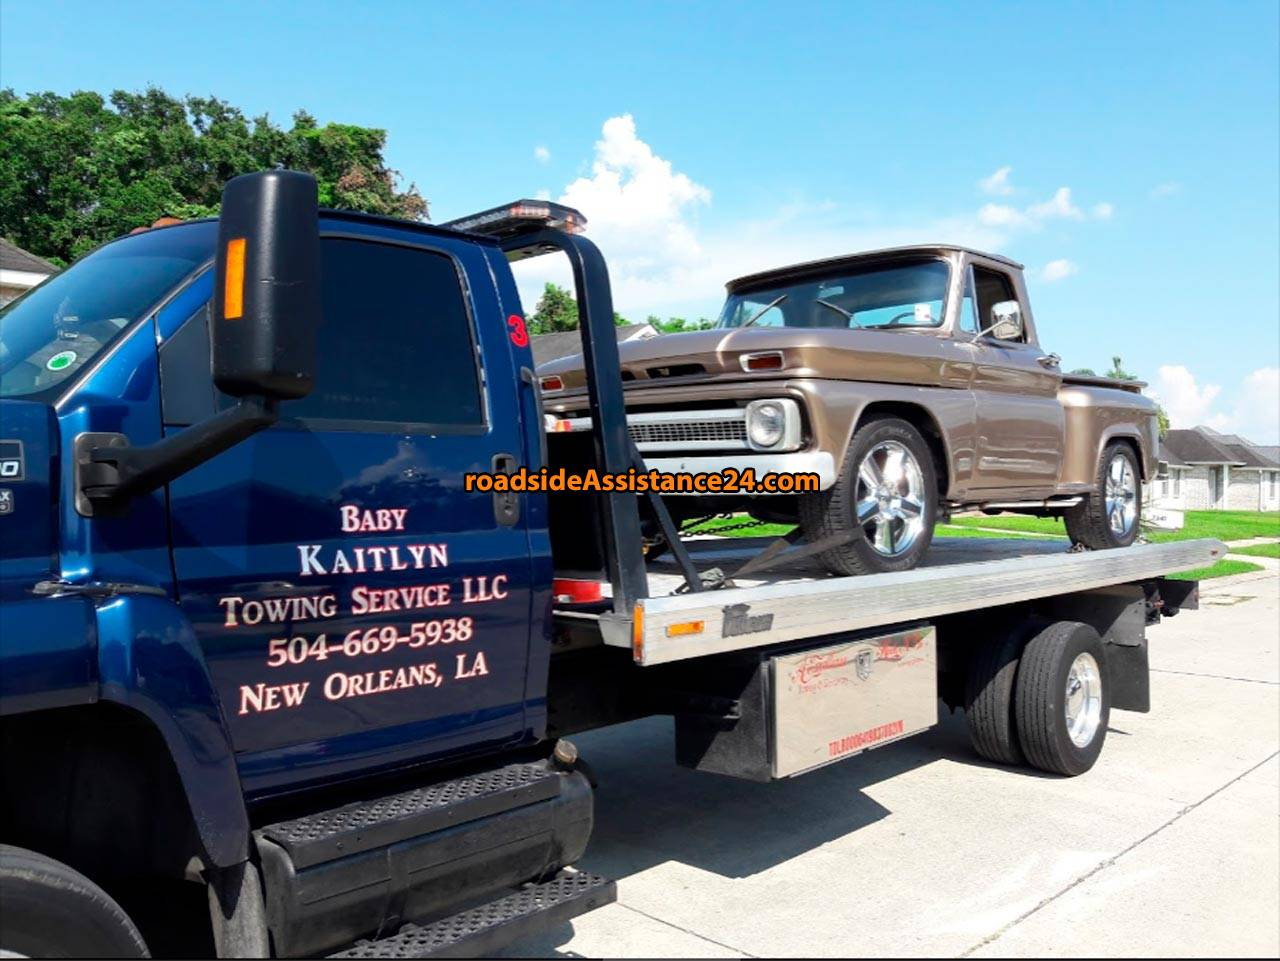 Baby Kaitlyn Towing Service LLC (New Orleans)